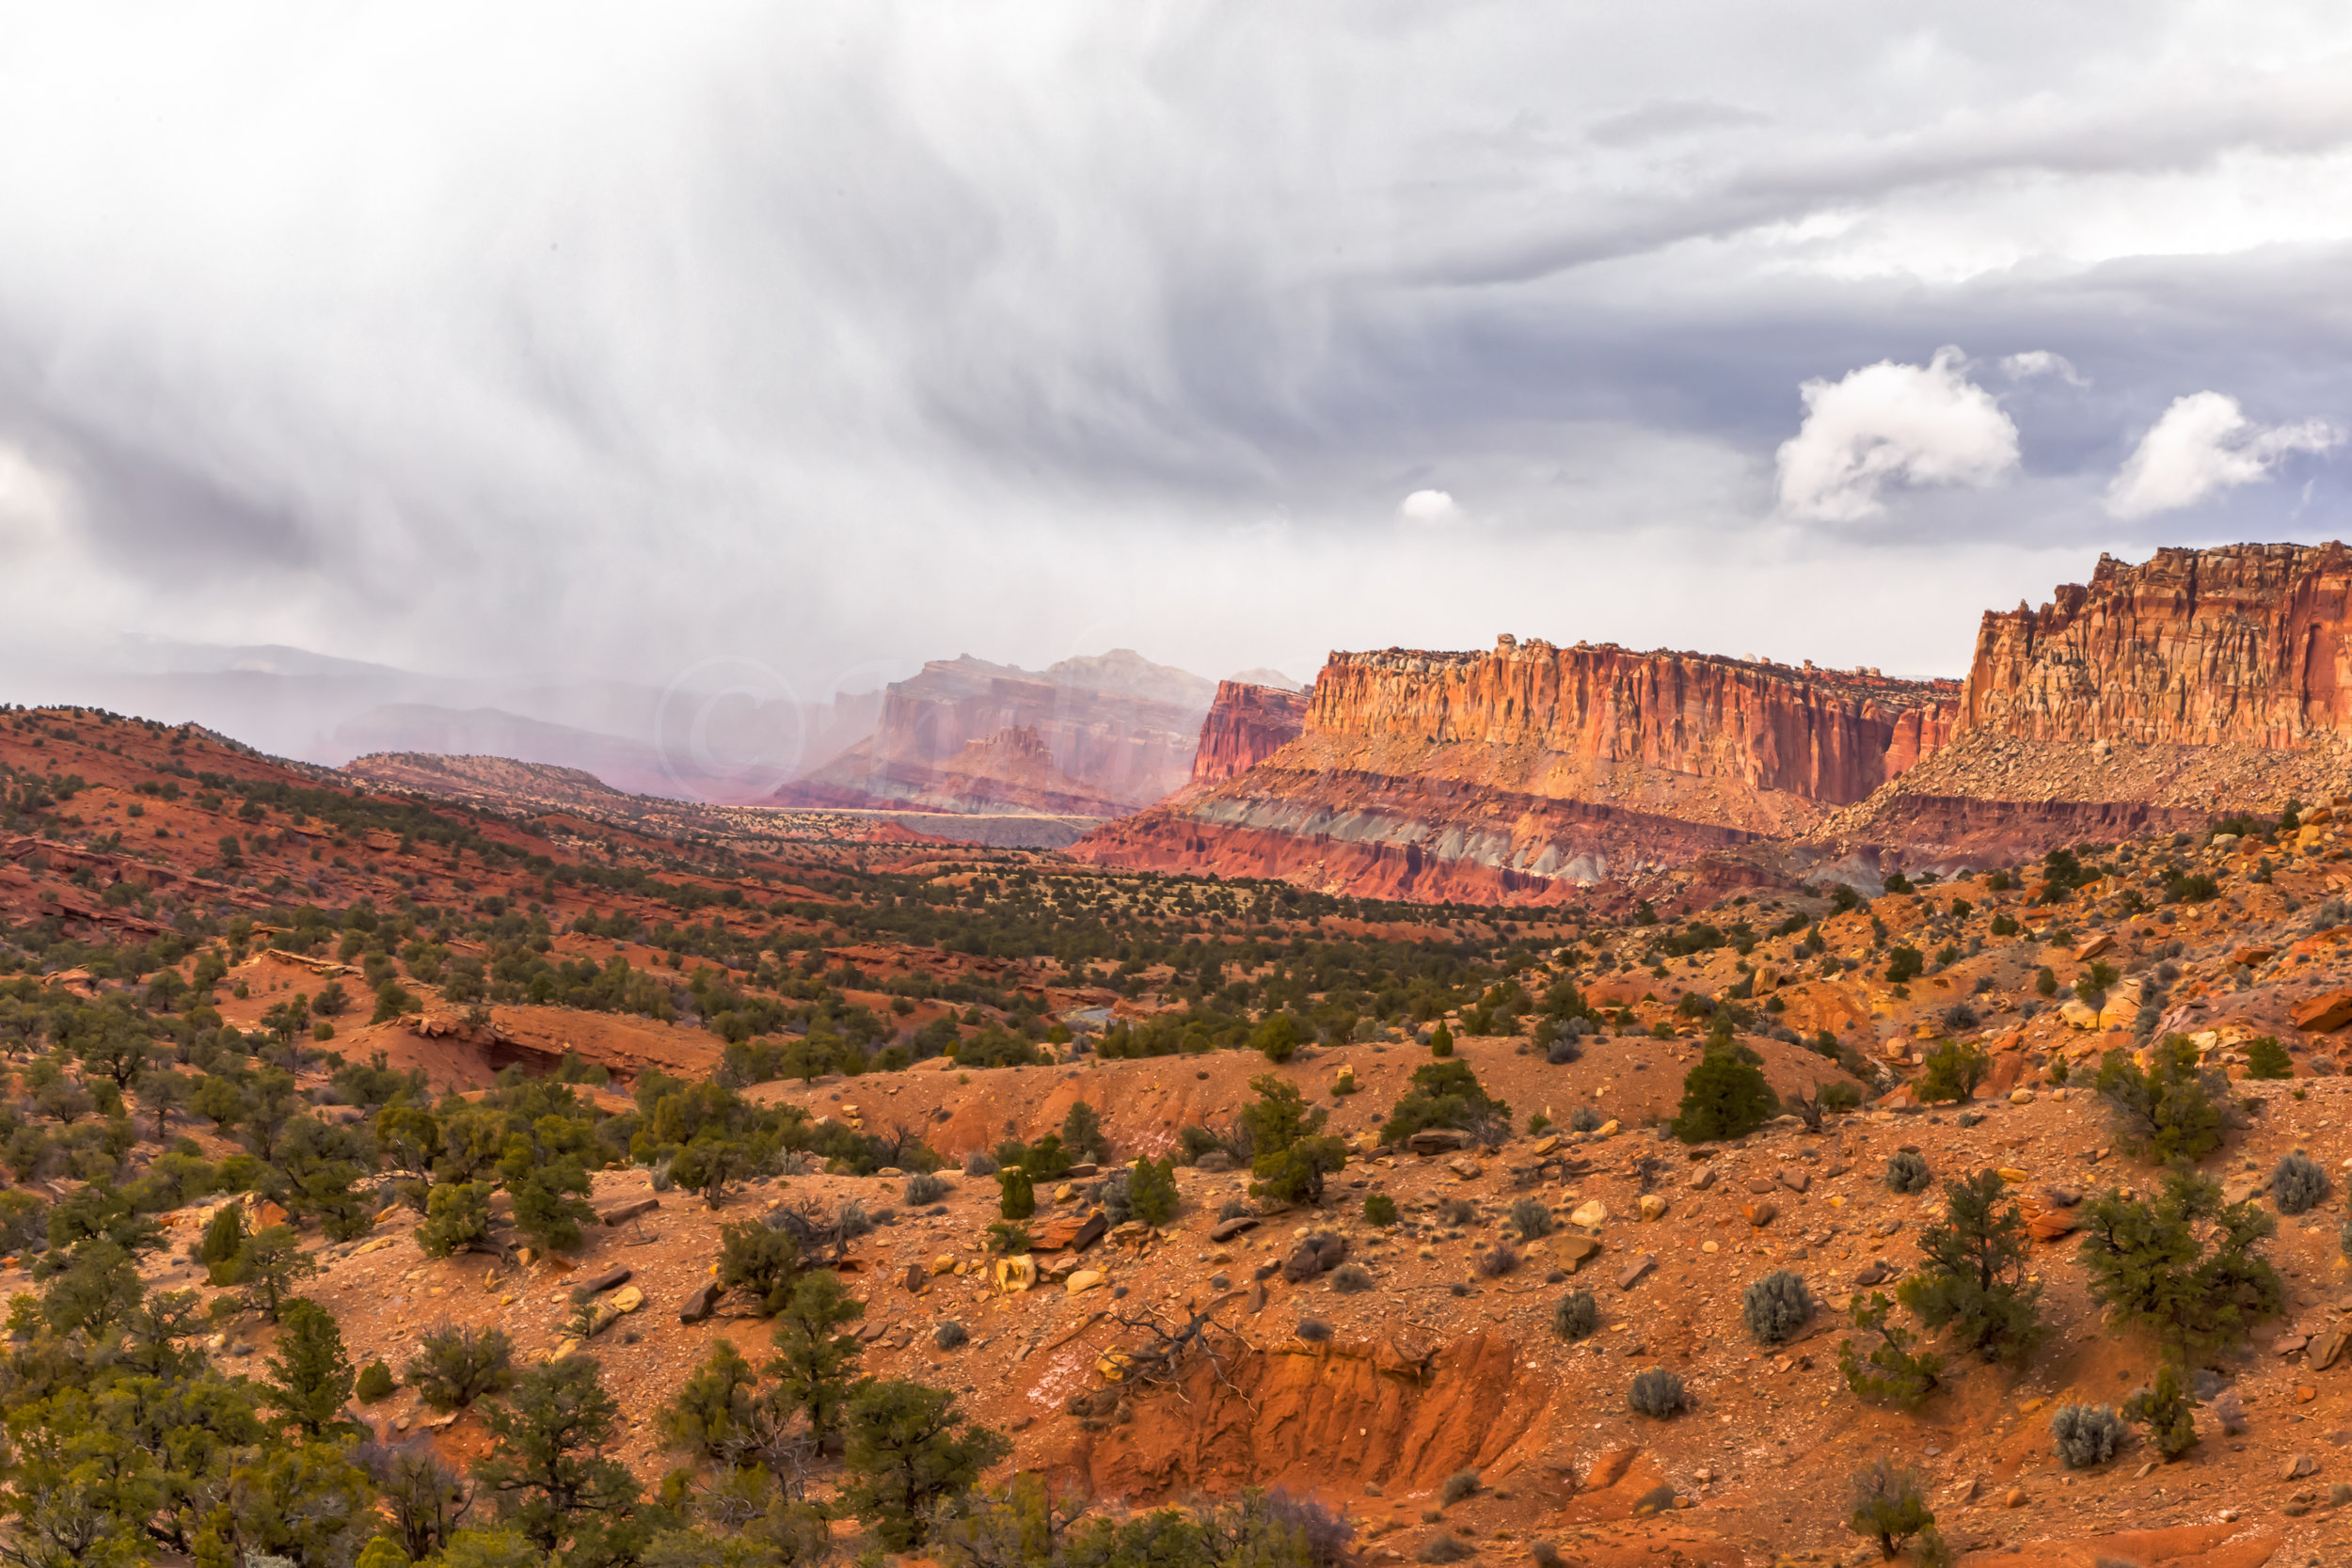 Capitol Reef National Park, Image # 0469